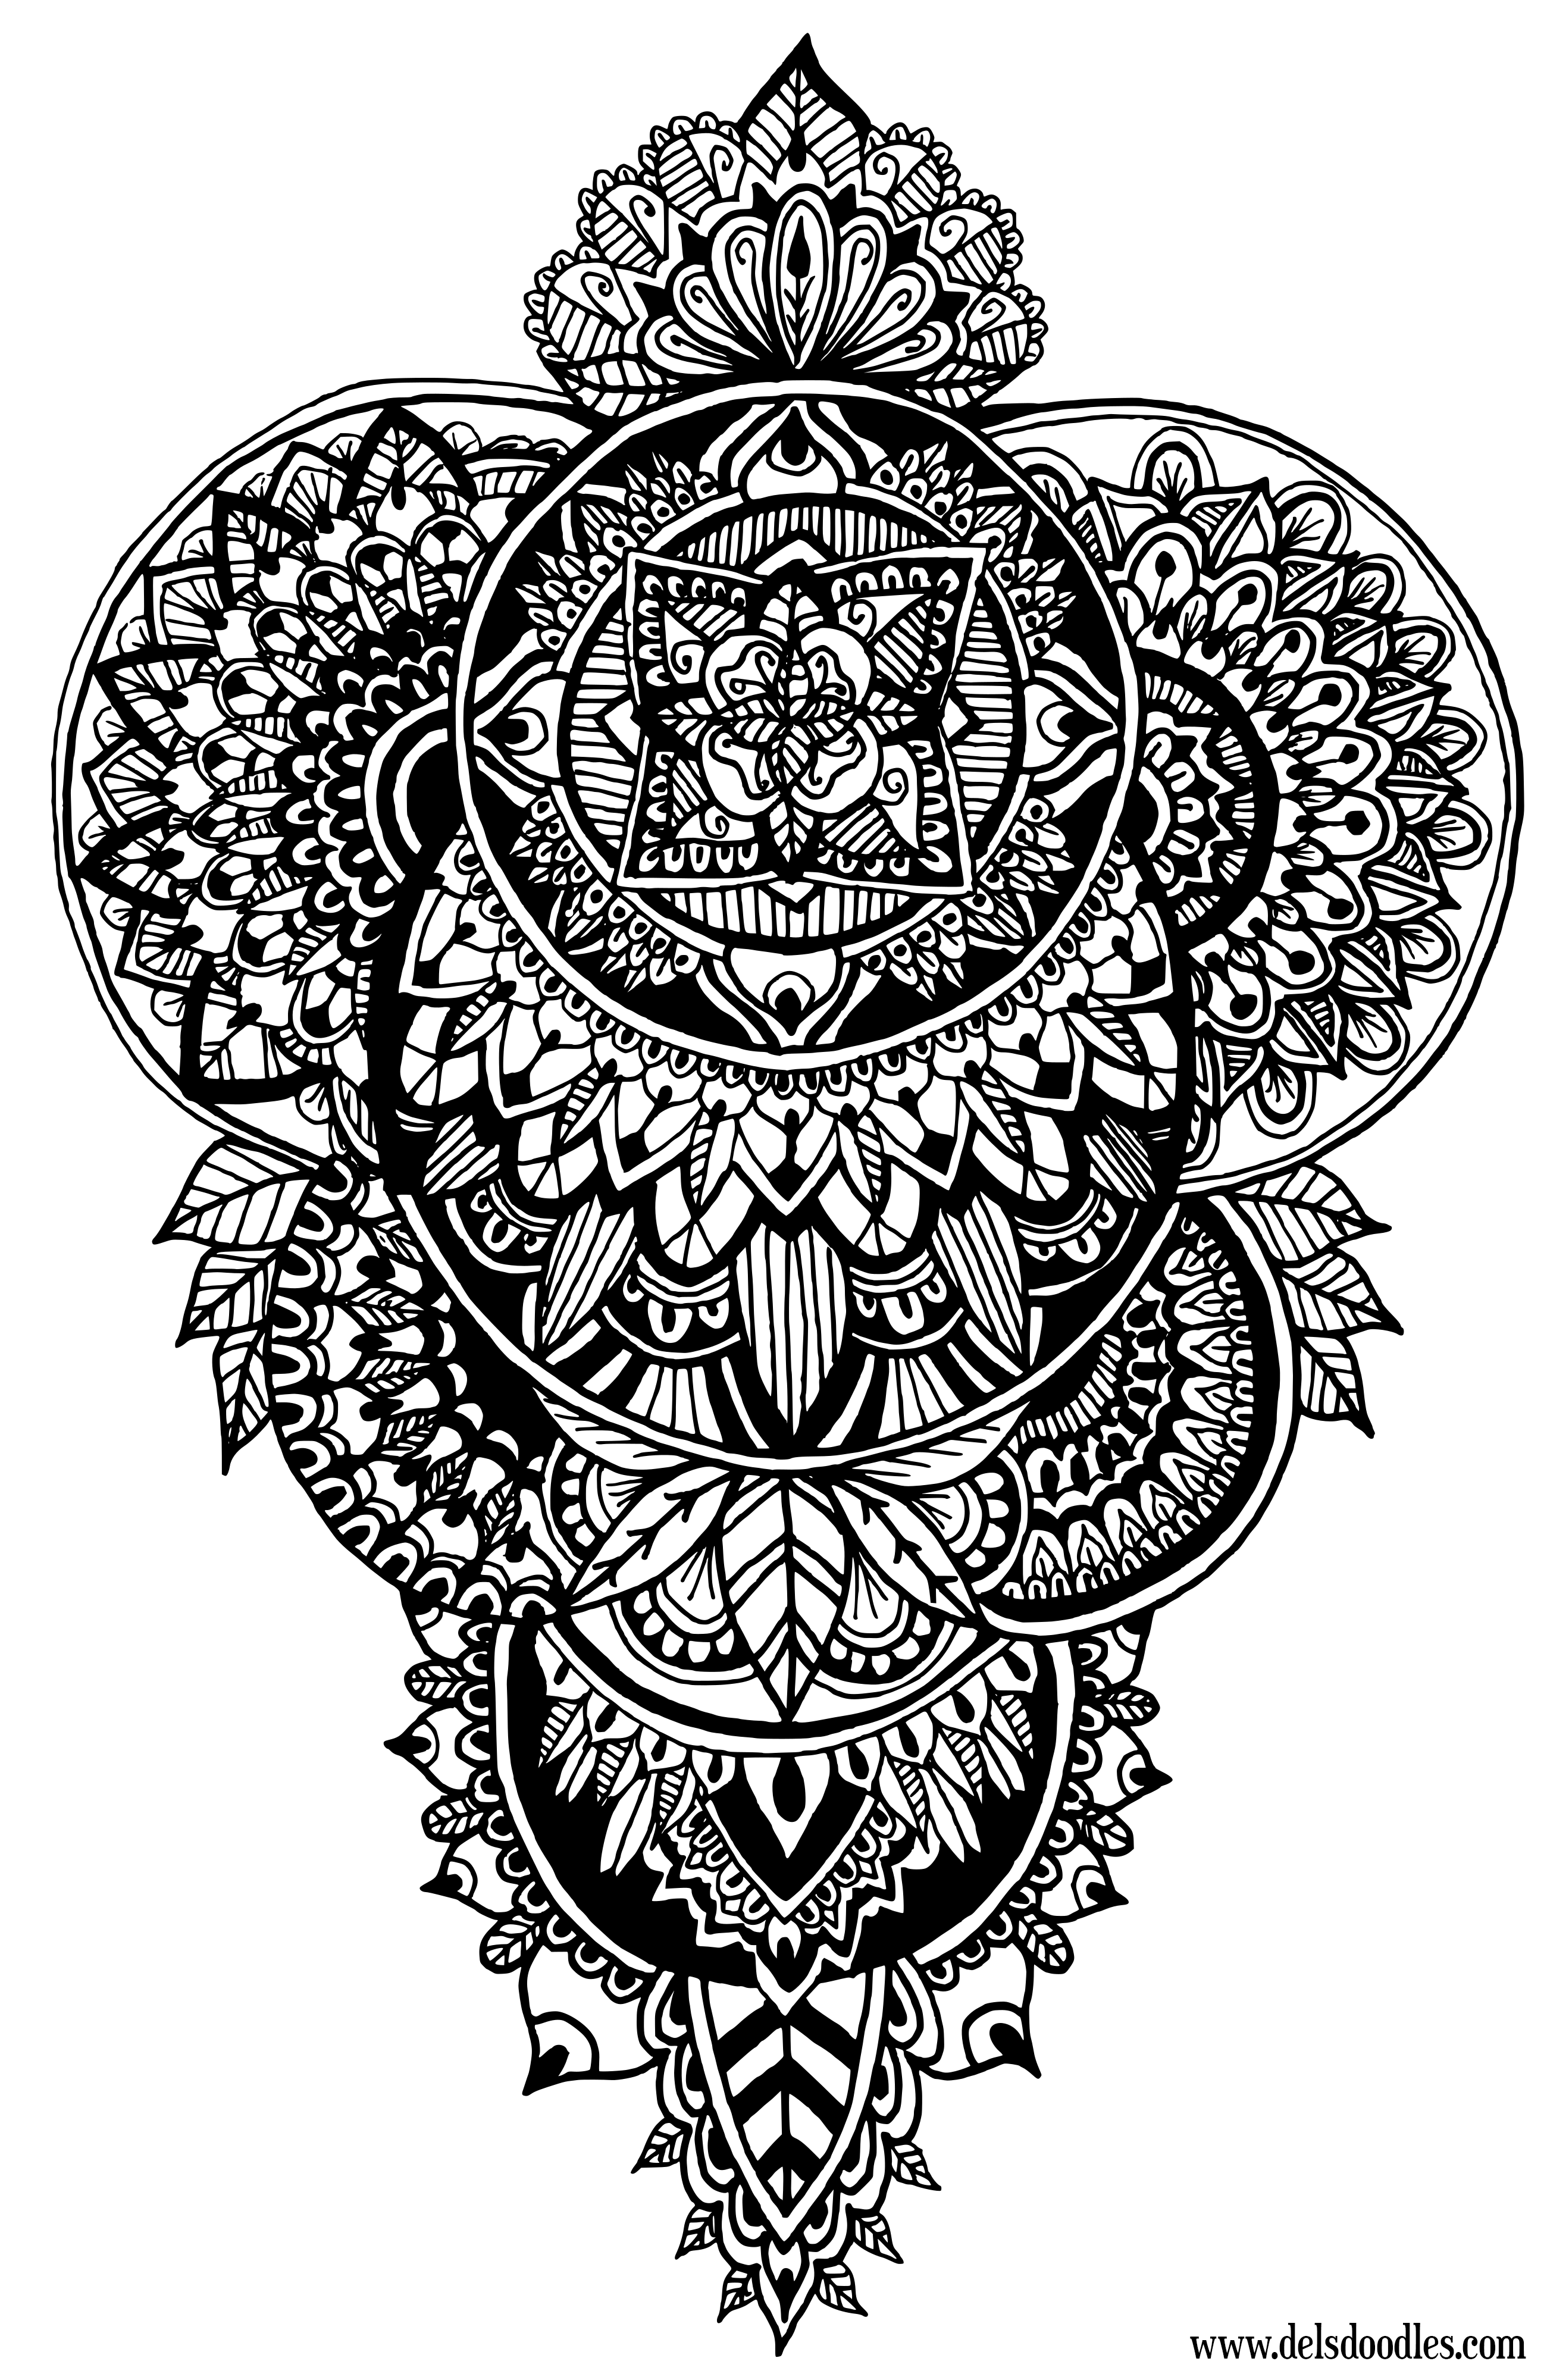 detailed mandala coloring pages welcome to dover publications designs coloring books coloring mandala detailed pages